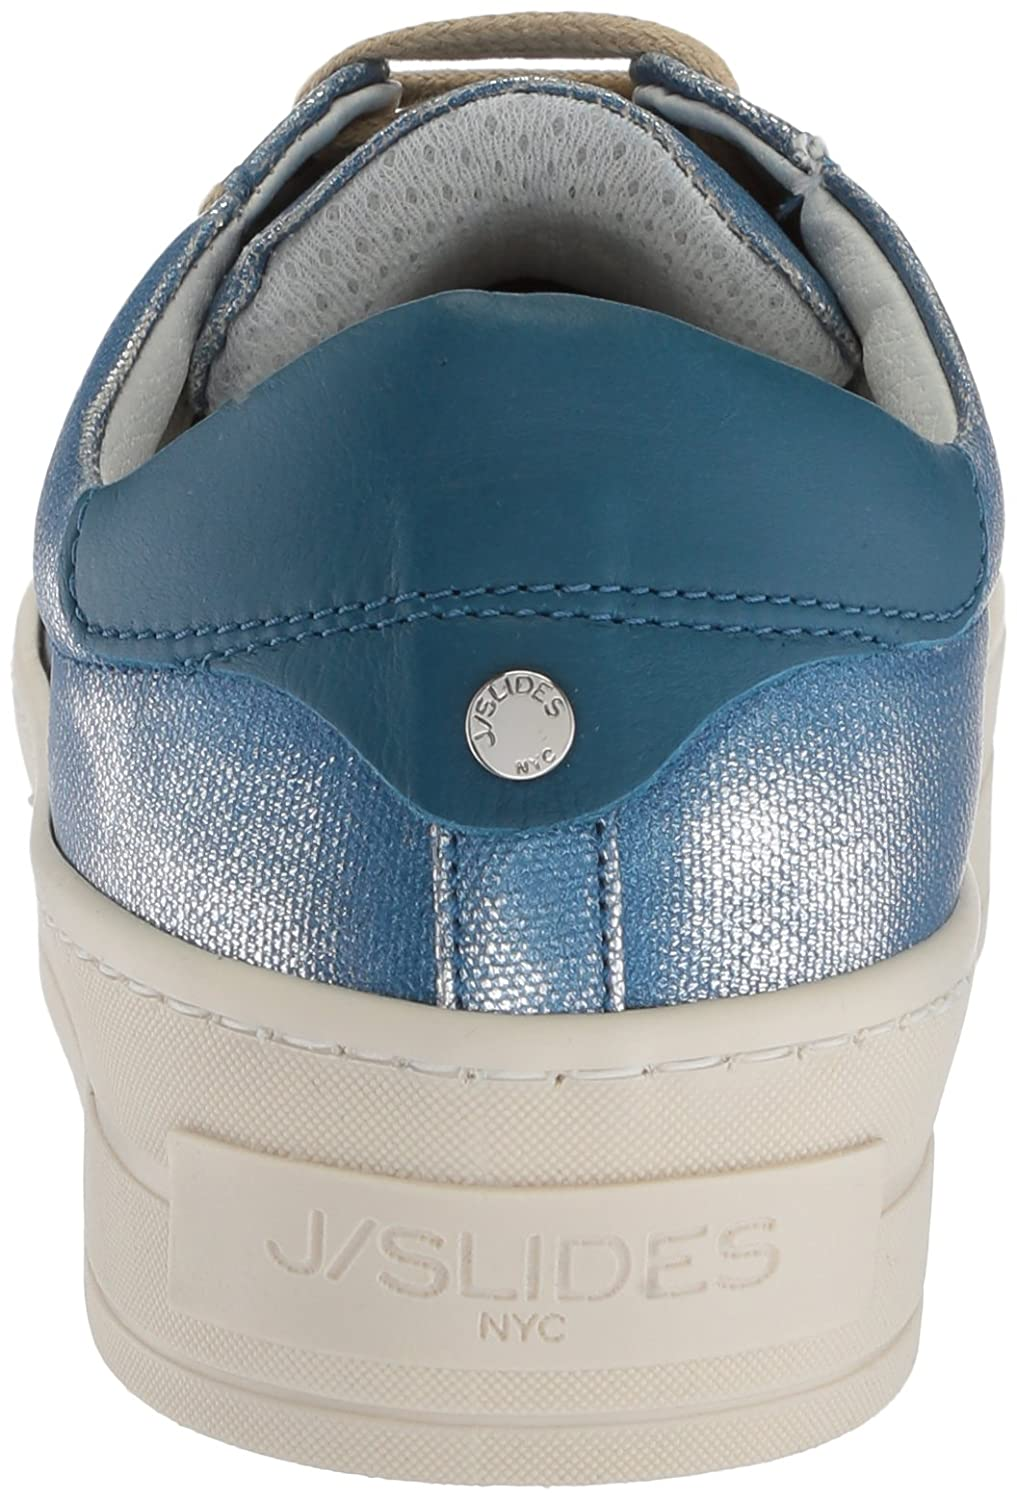 J Slides Women's Heather Sneaker B076DZ2HLC 8.5 B(M) US|Blue